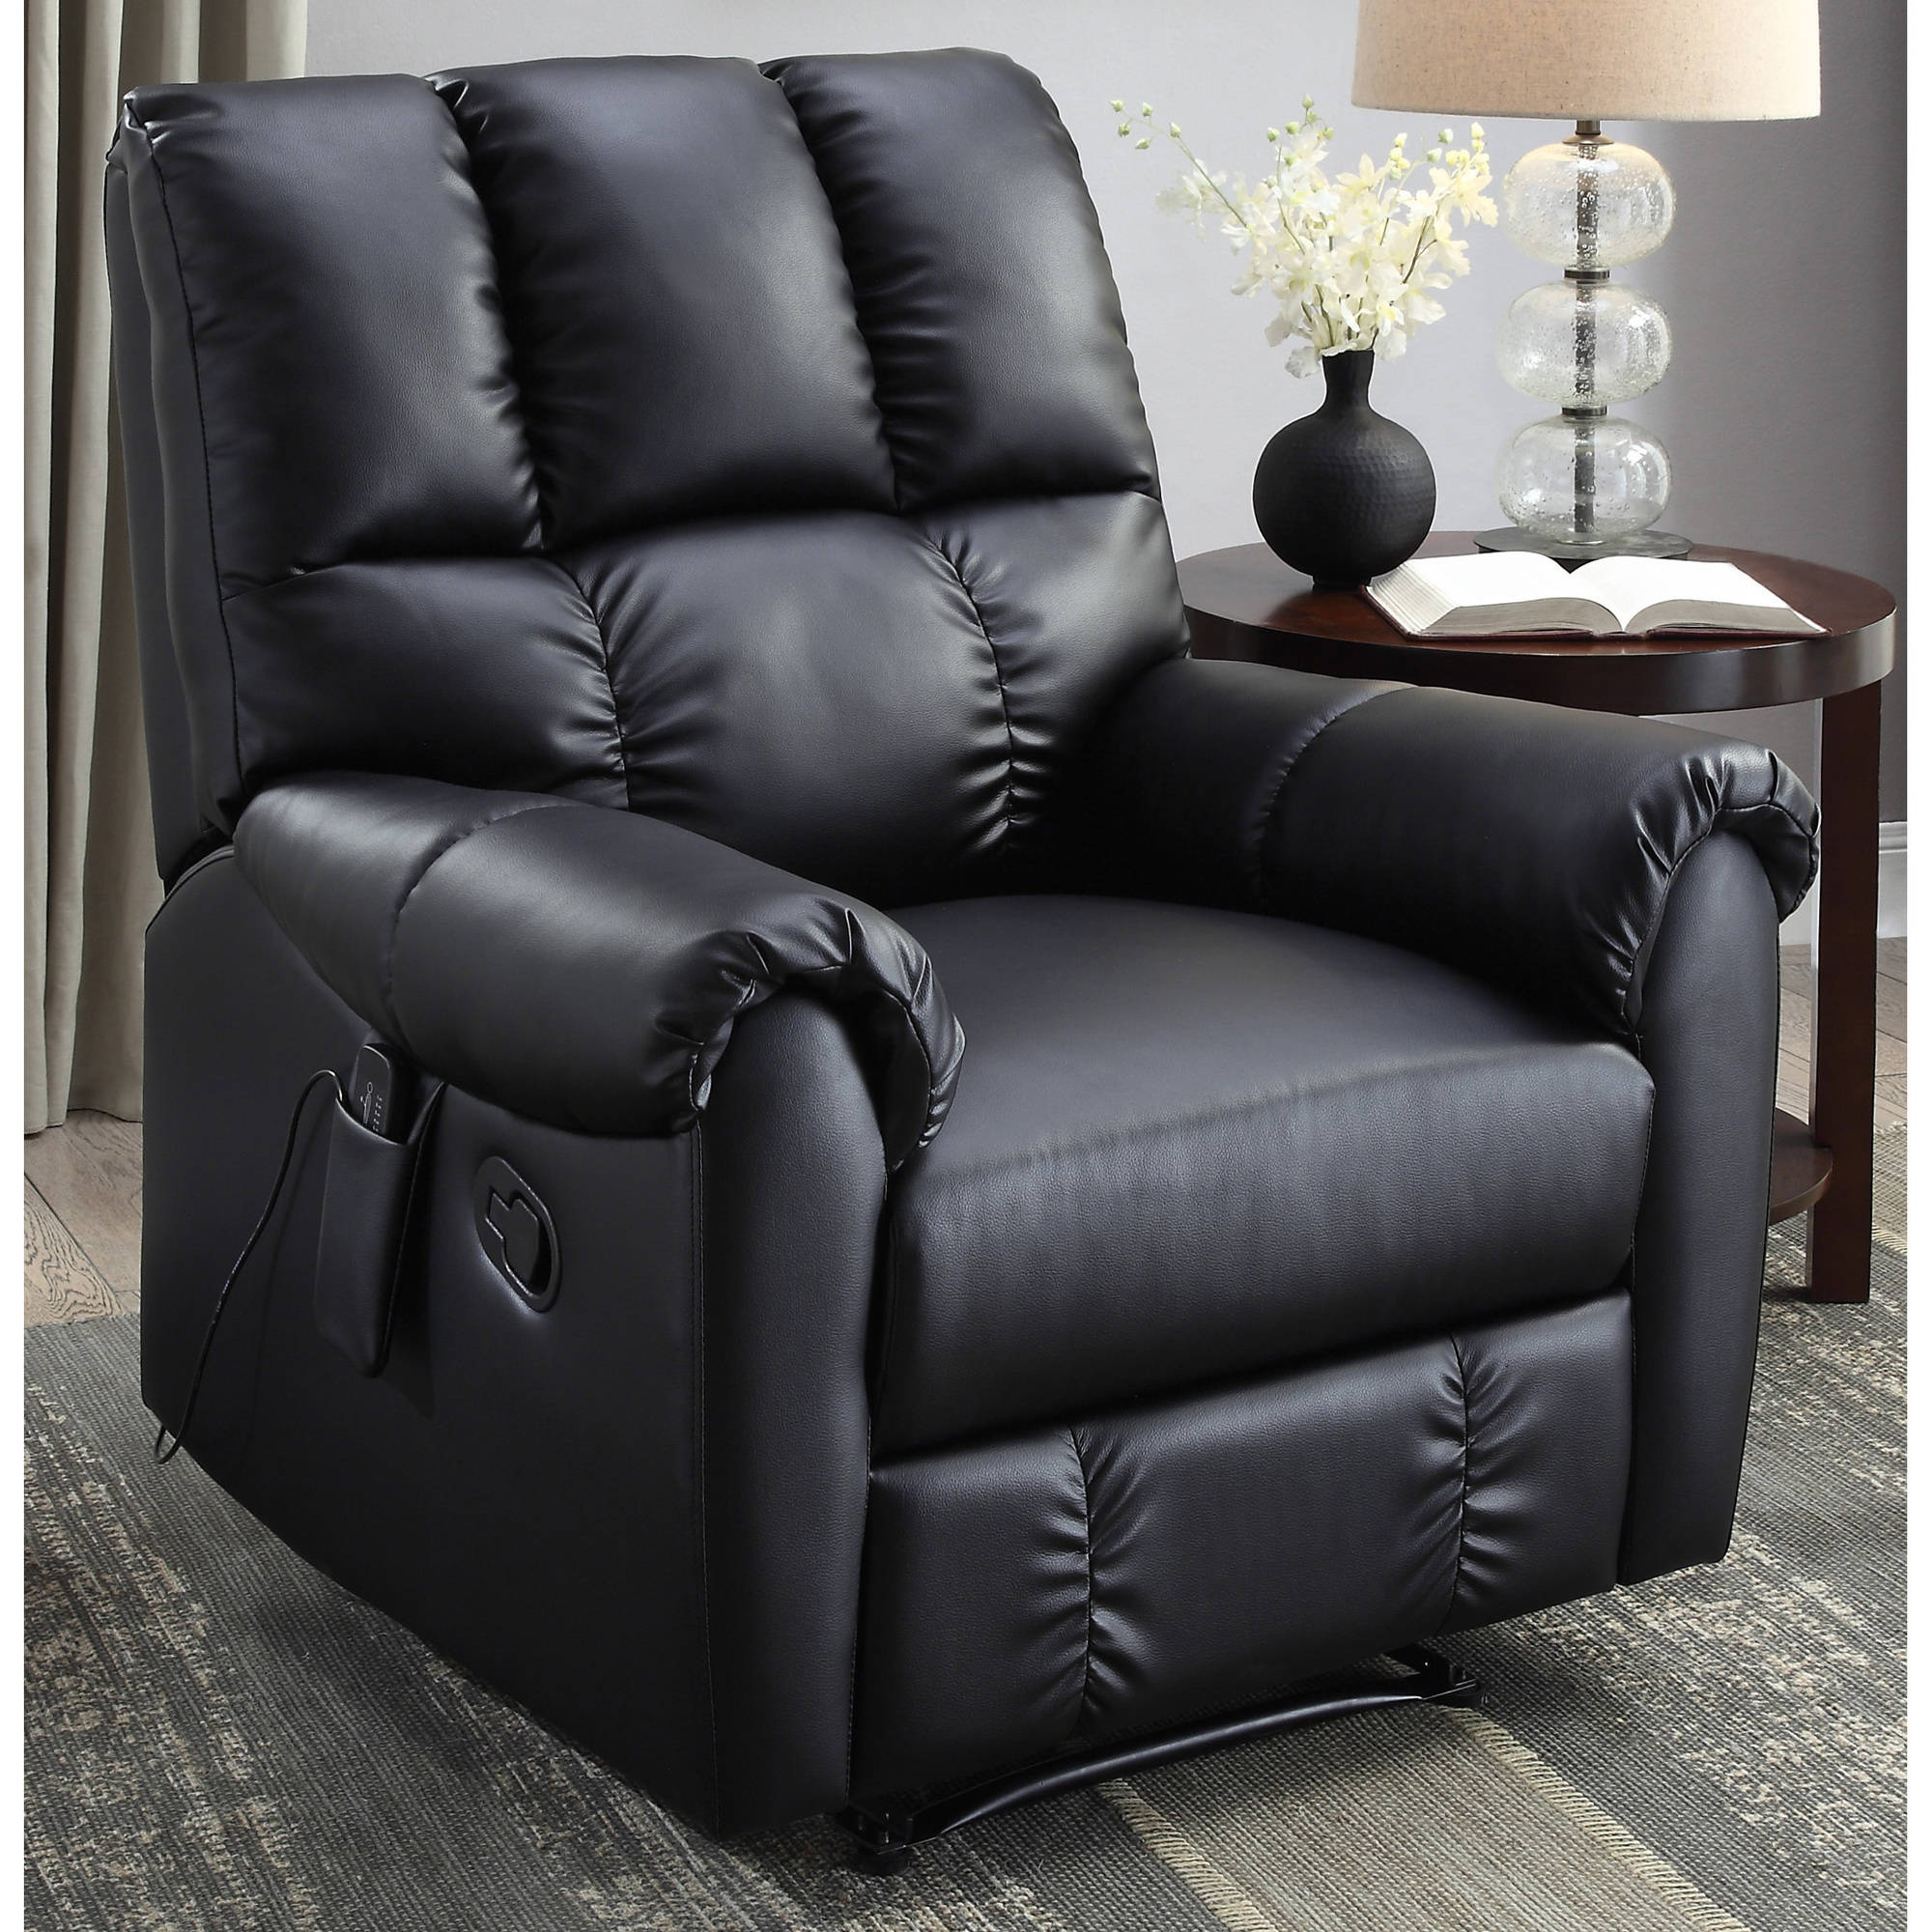 height threshold reclining width chair trim ottoman with recliner quantumreclining quantum spectranoire palliser and item products serta contemporary